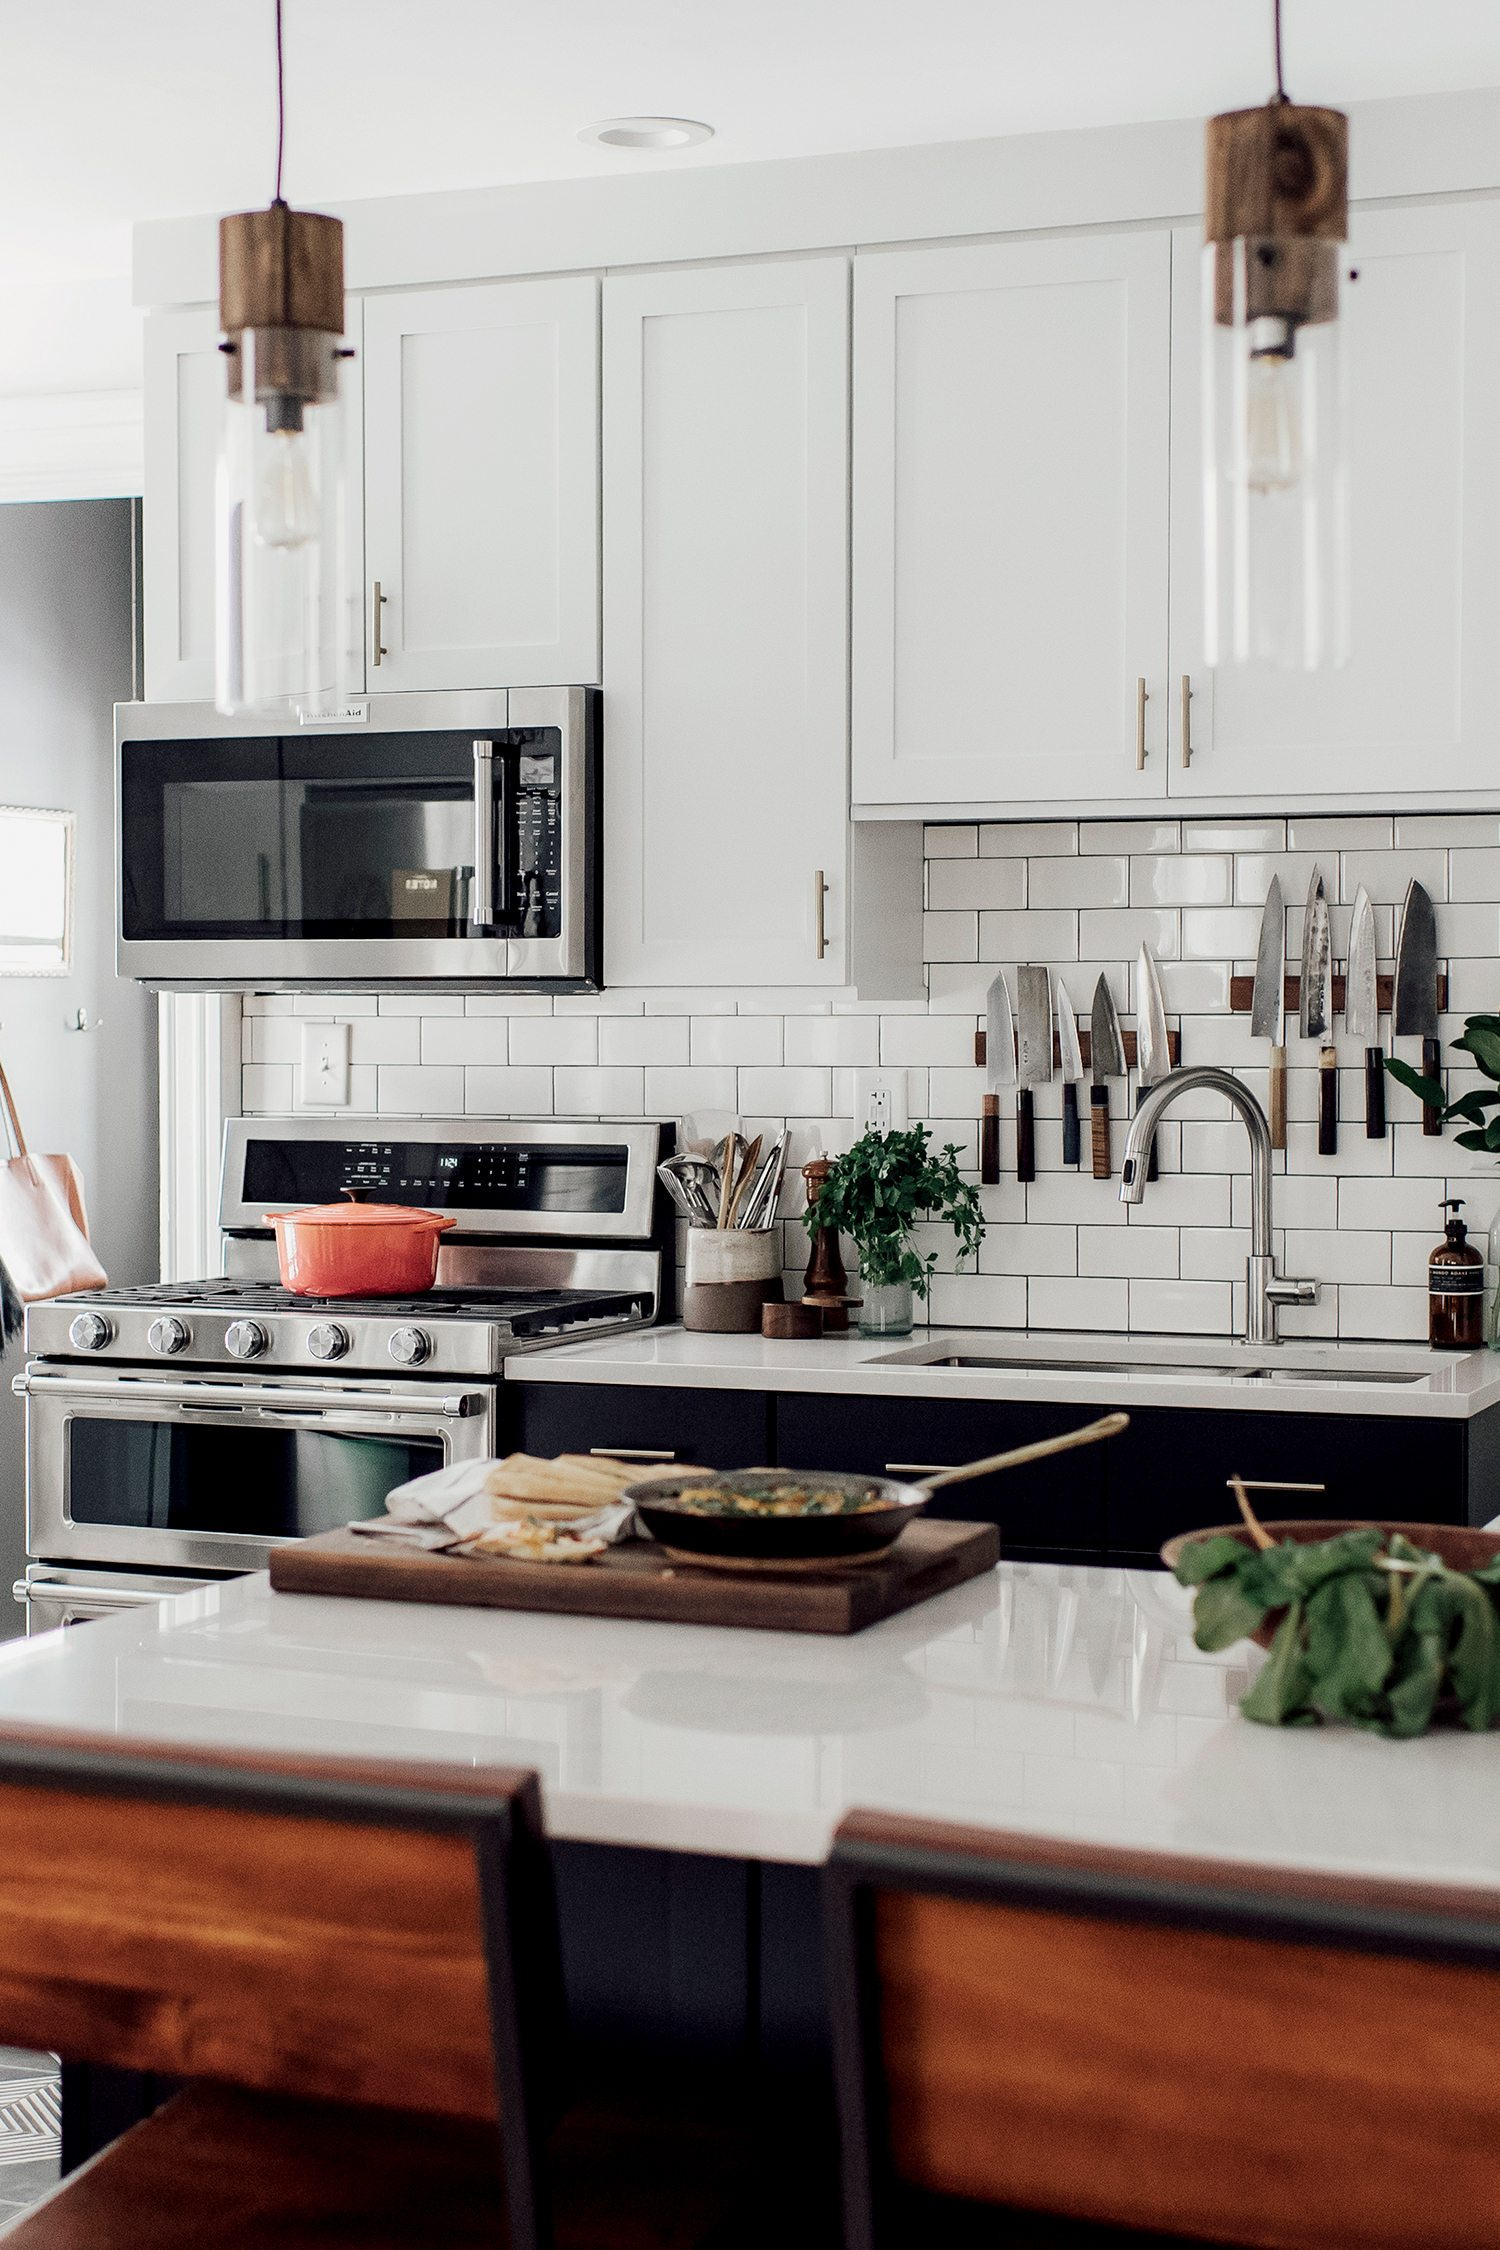 Michelle + Nick's Super Chic Modern Boho Kitchen